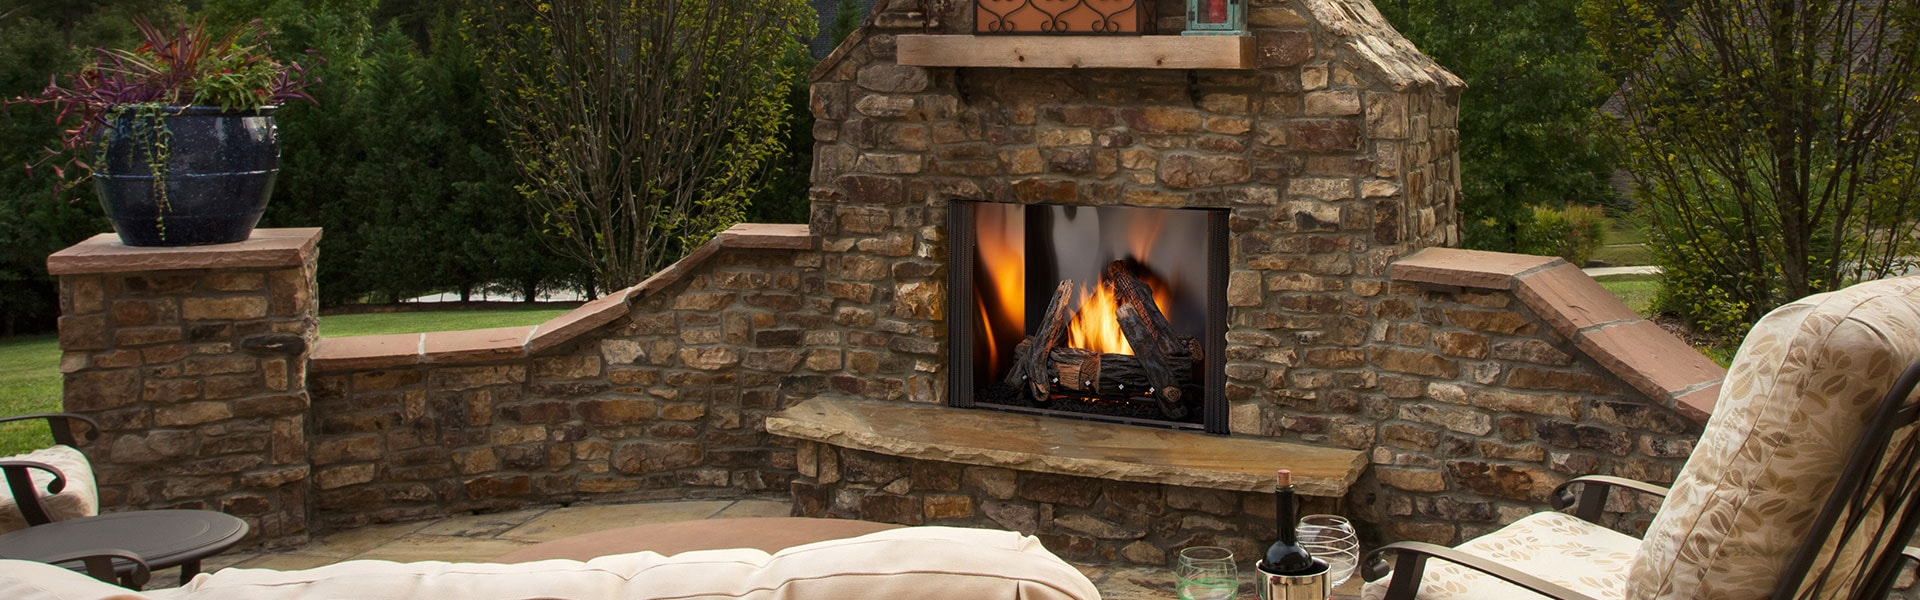 <p>Courtyard Gas Fireplace</p>